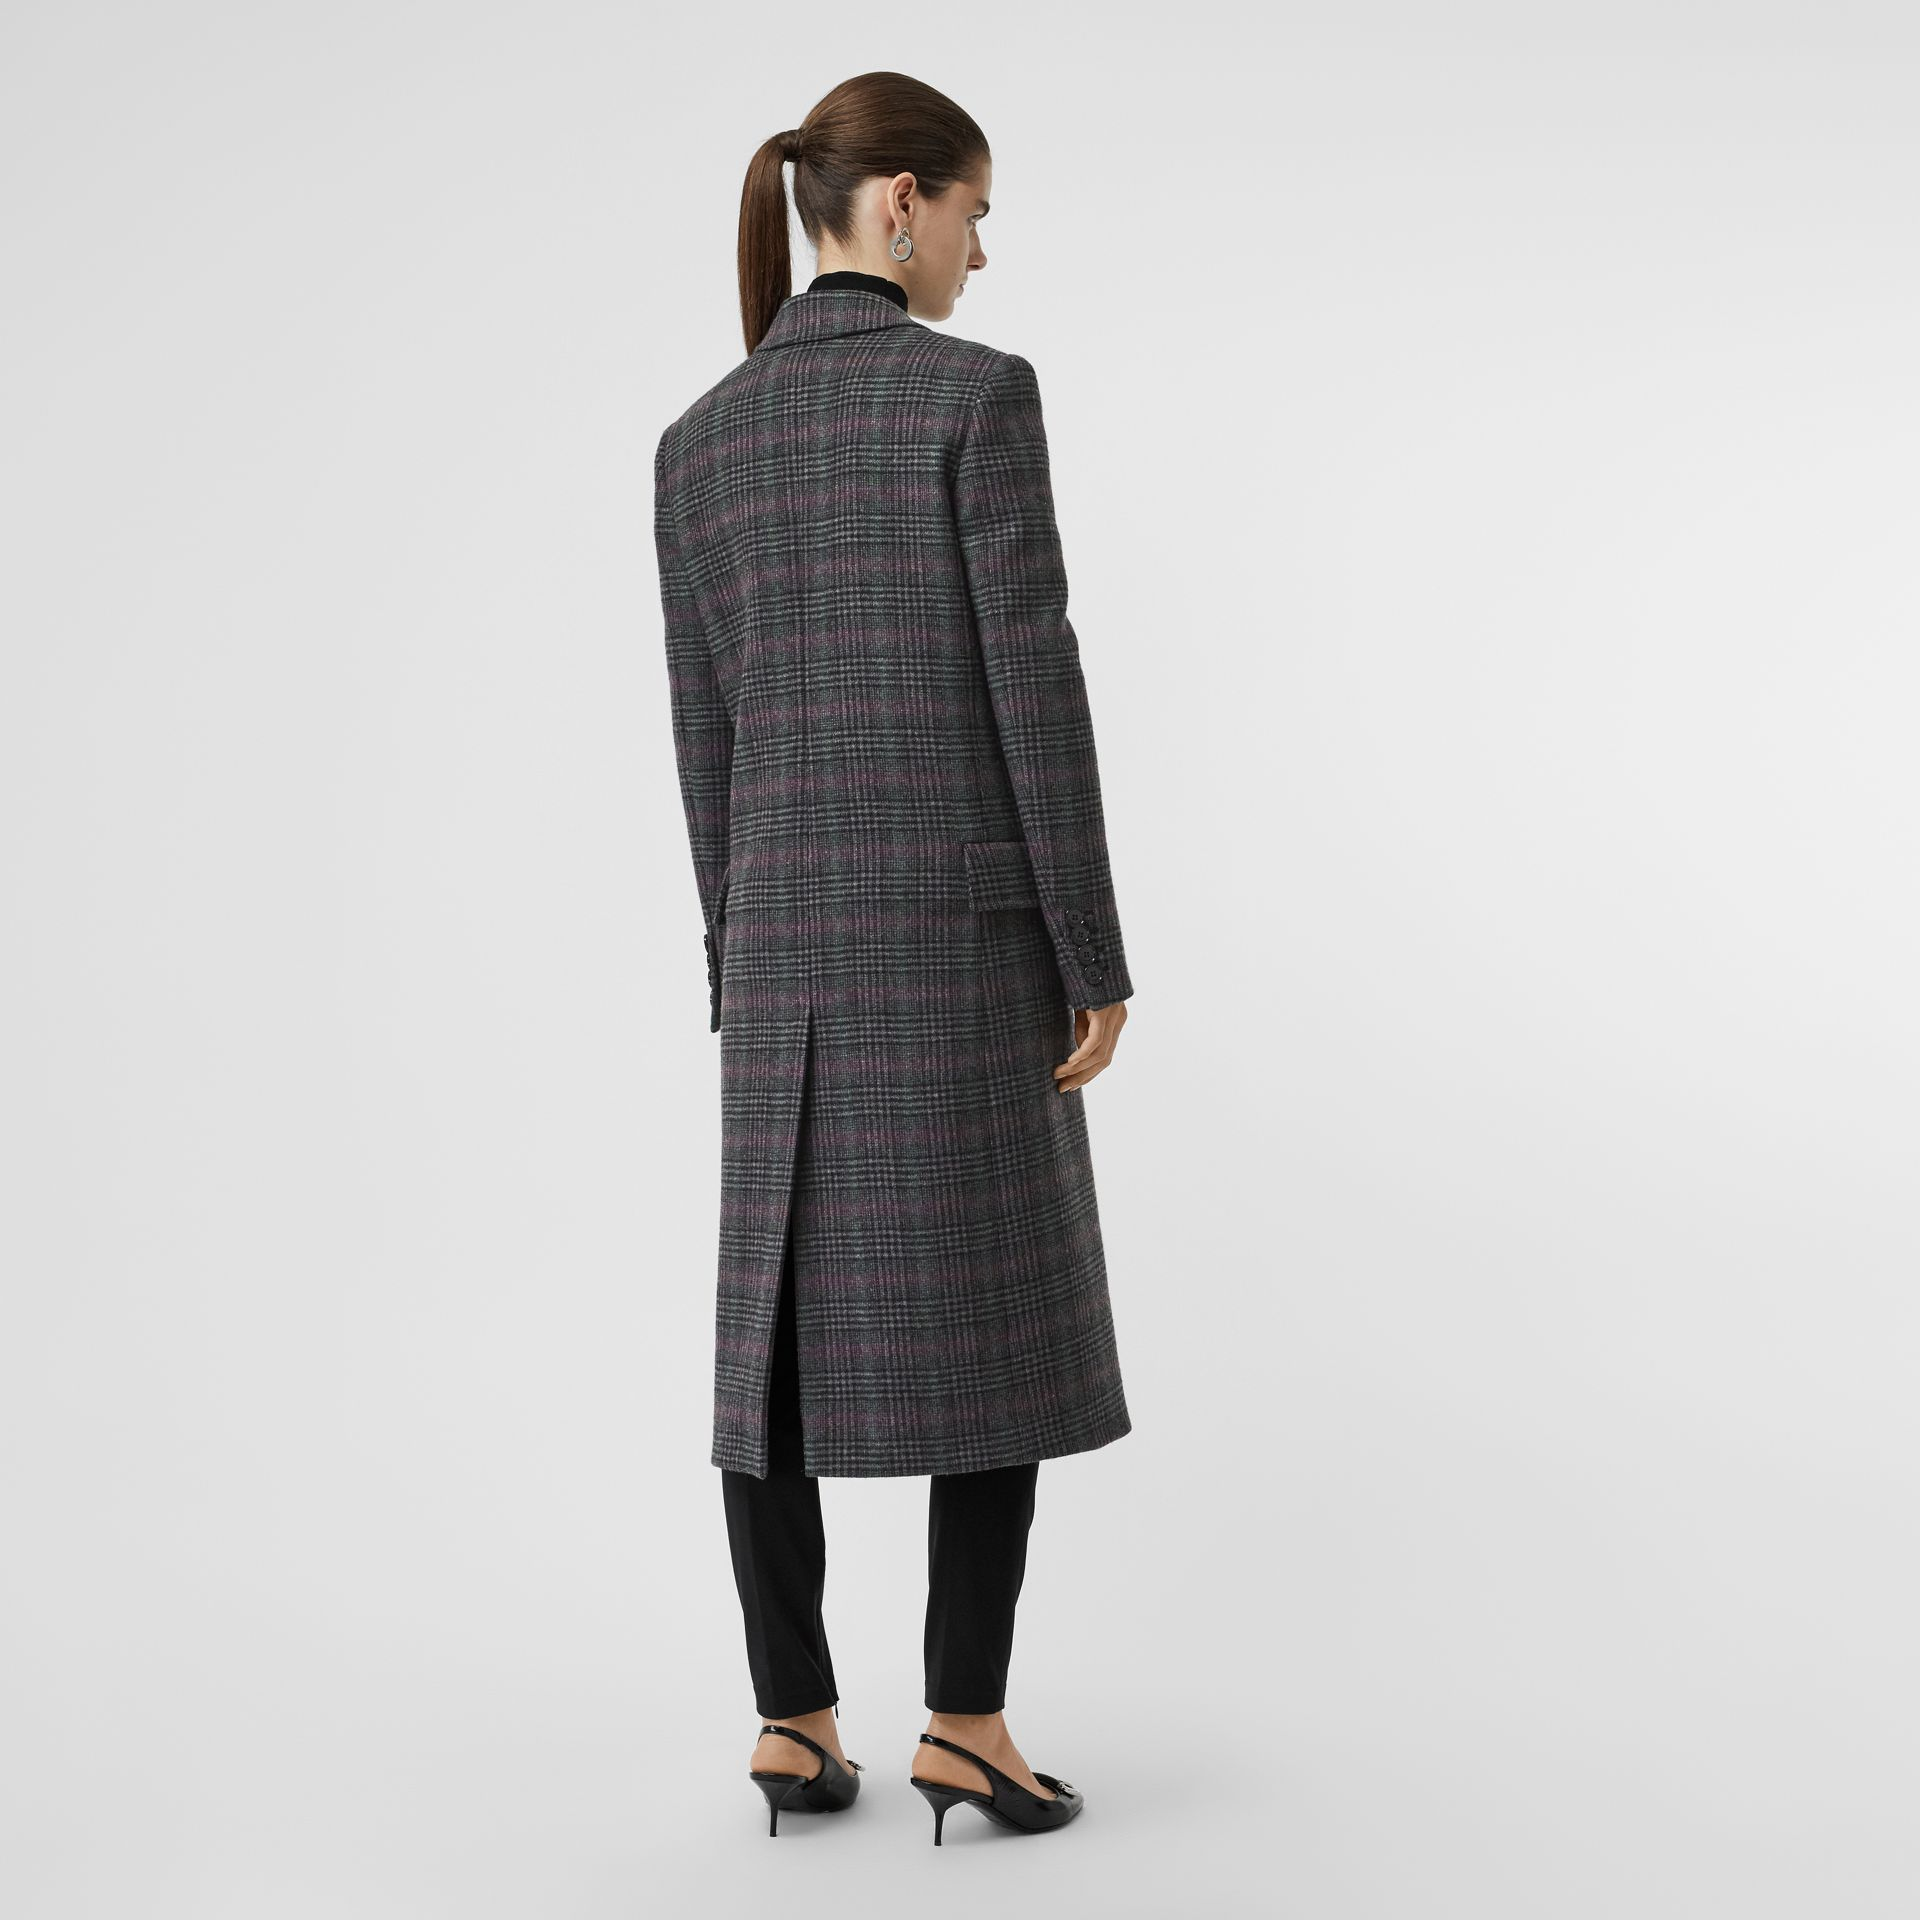 Prince of Wales Check Wool Tailored Coat in Charcoal - Women | Burberry Singapore - gallery image 2